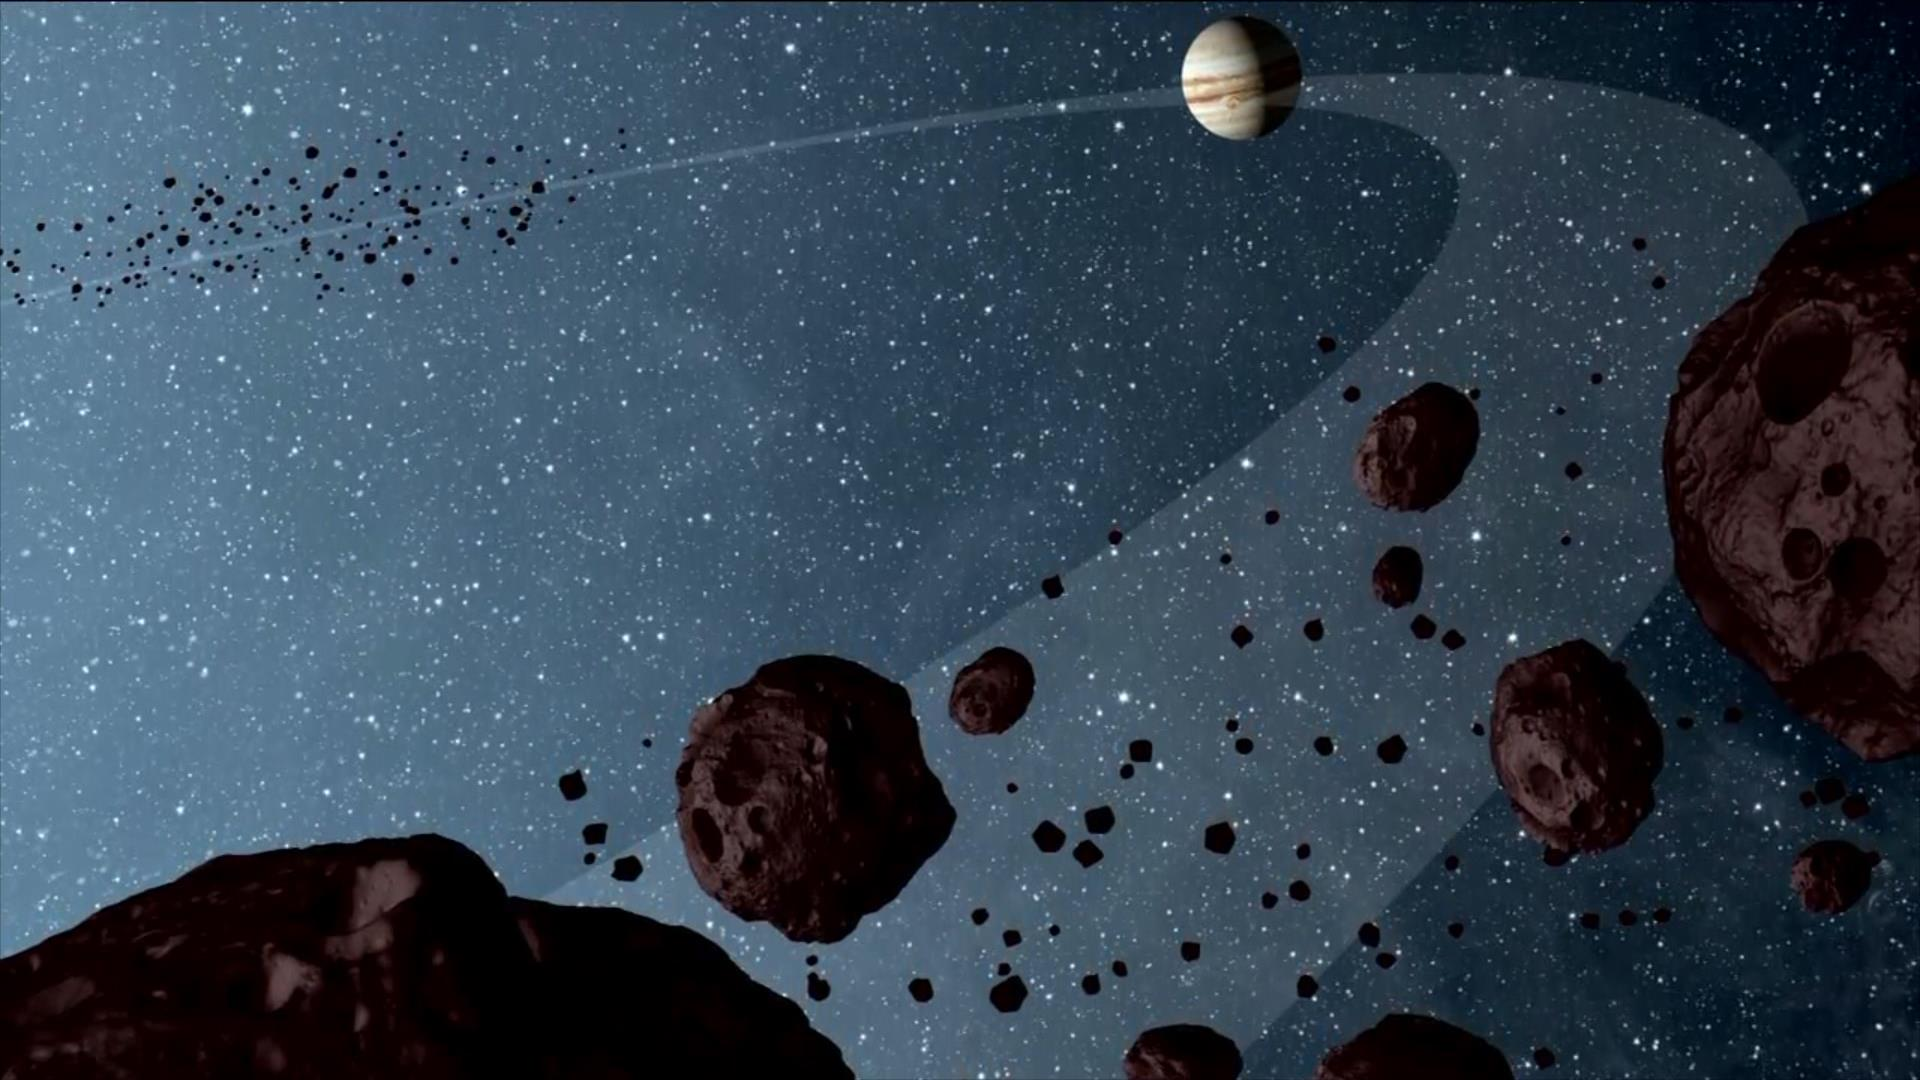 NASA Announces 2 Discovery Missions To Study Asteroids ...